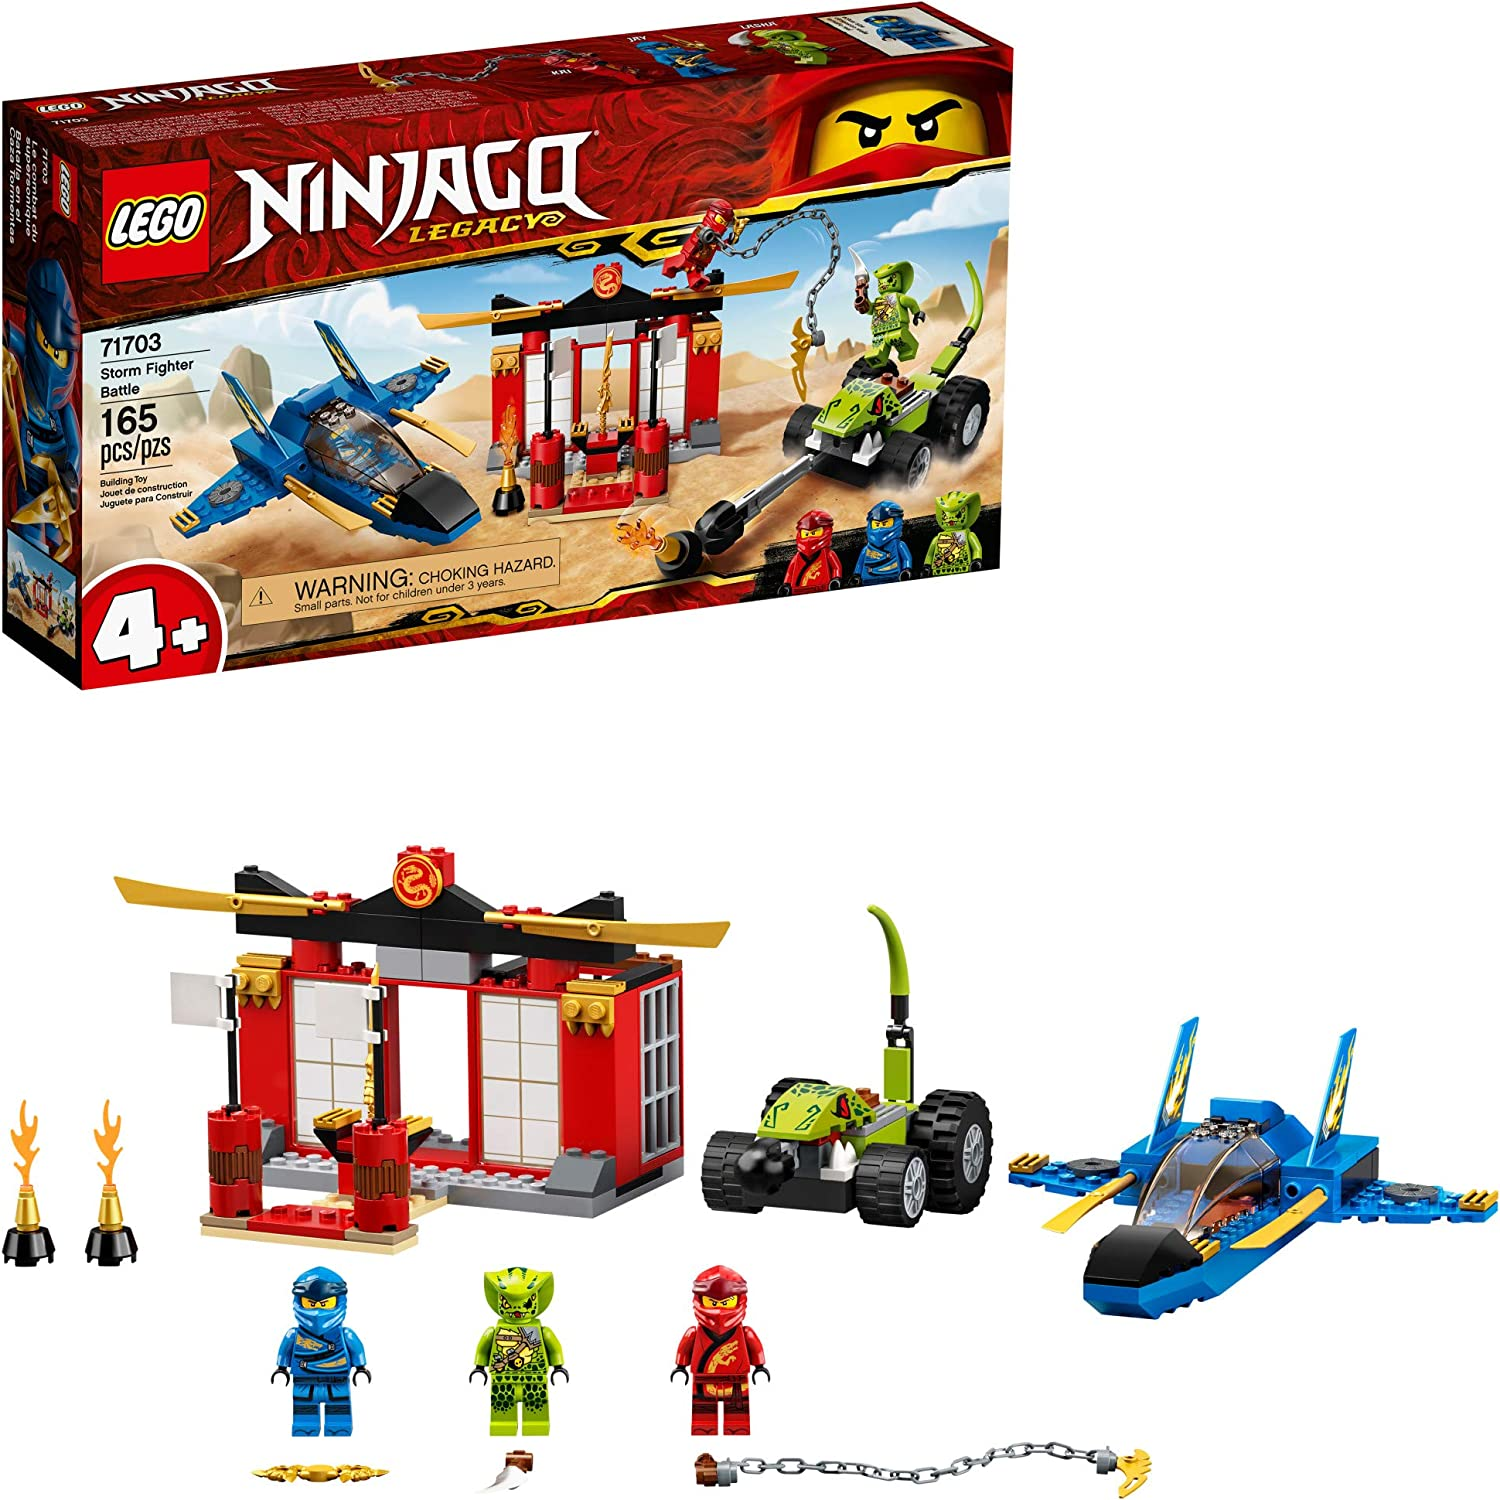 LEGO NINJAGO Legacy Storm Fighter Battle 71703 Ninja Playset Building Toy for Kids Featuring Ninja Action Figures, New 2020 (165 Pieces)